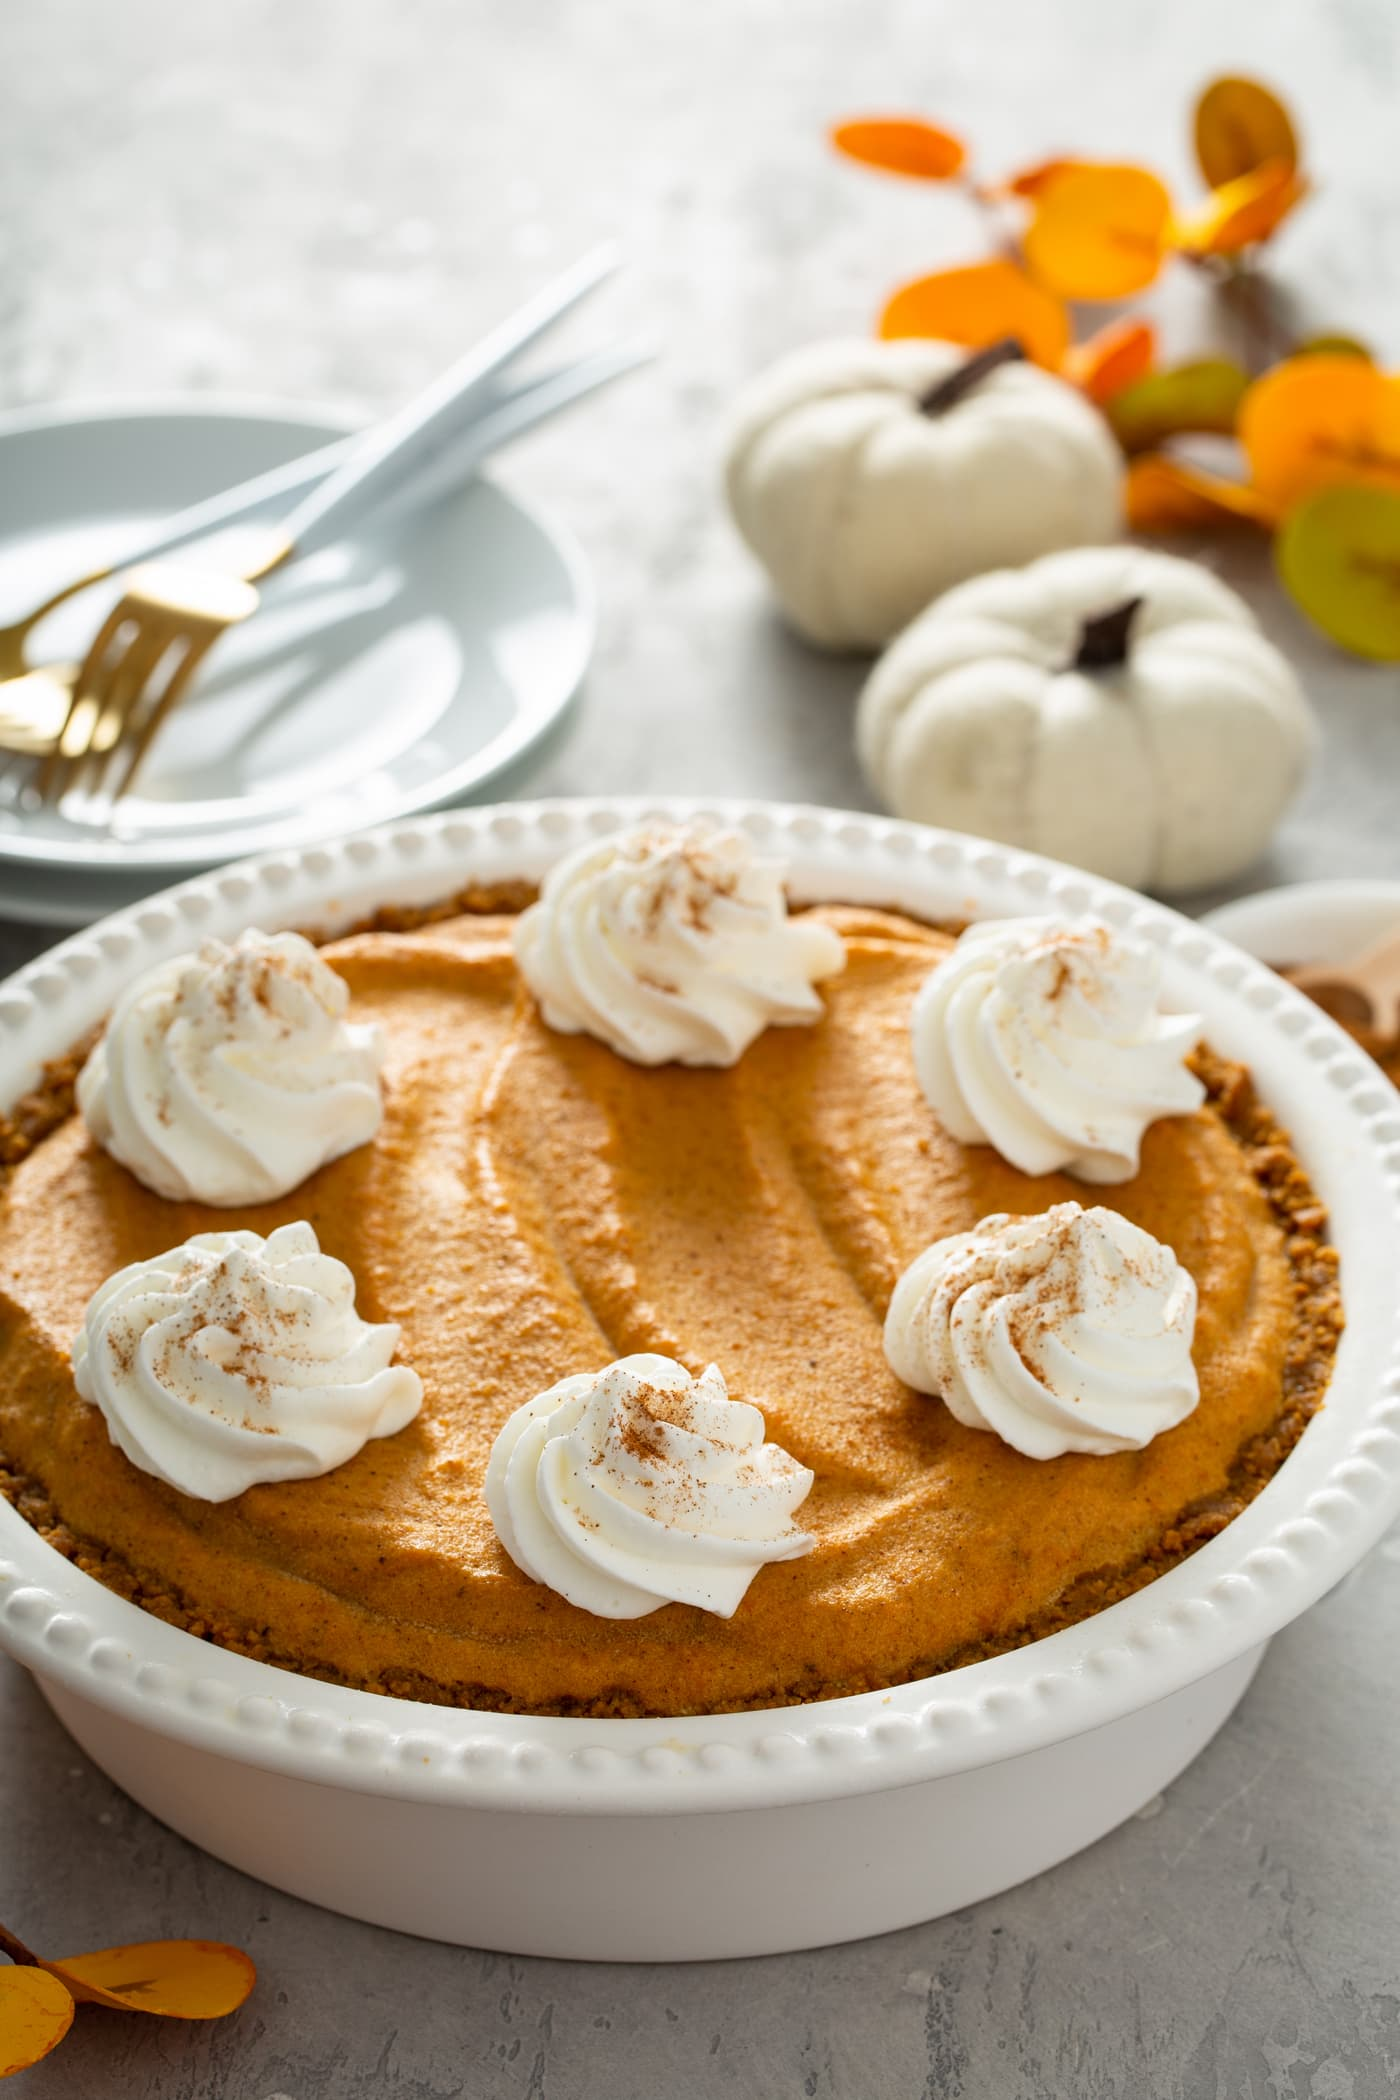 A whole pumpkin ice cream pie in a white pie dish. The pie has dollops of whipped cream sprinkled with cinnamon on top. There is a stack of white dessert plates with three forks on them, two tiny white pumpkins, and fall colored leaves behind the pie.